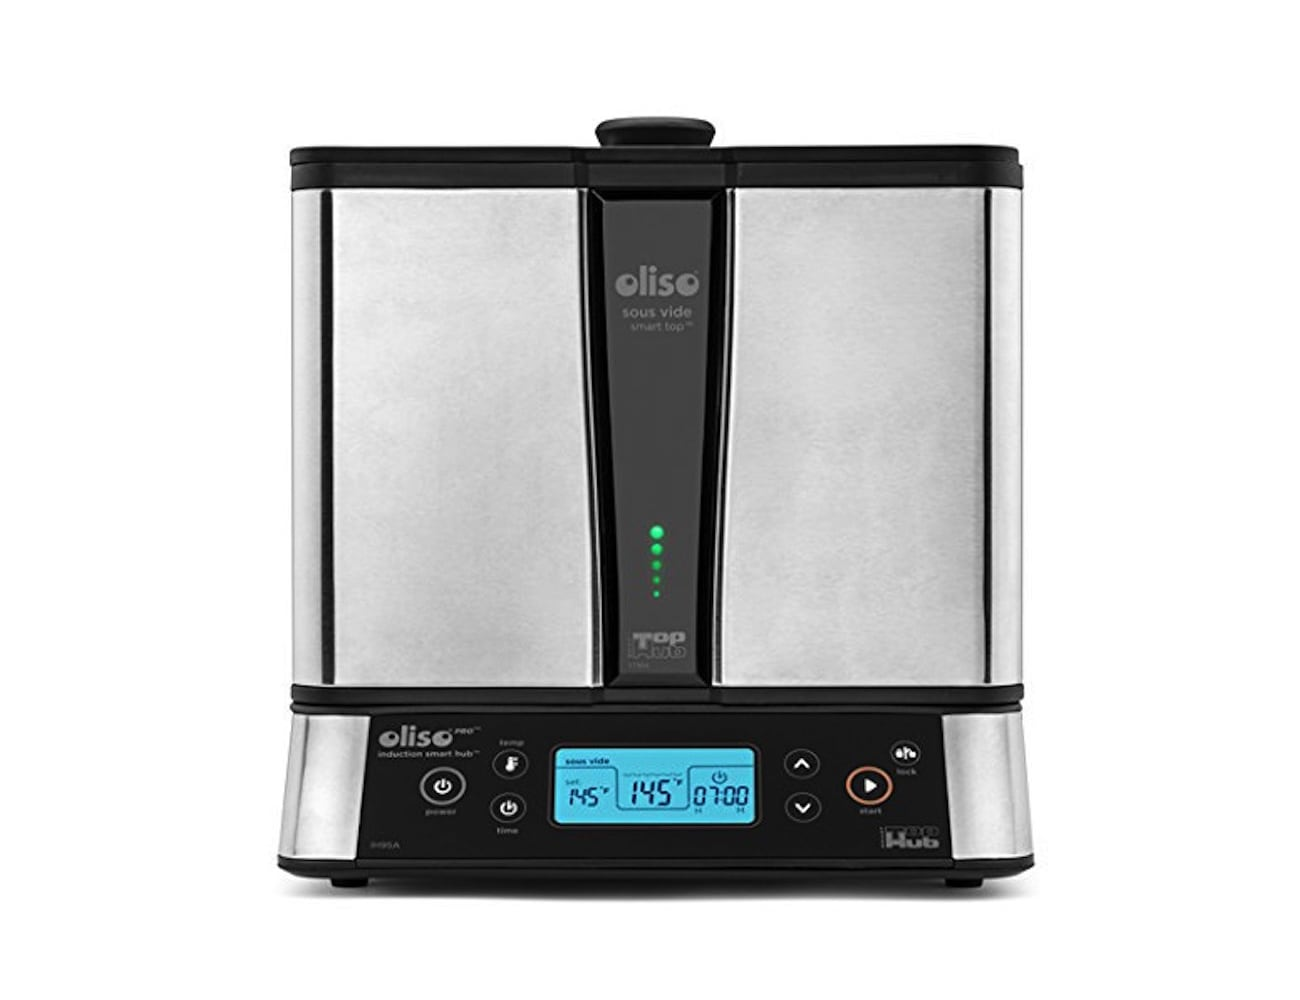 Oliso SmartHub and Top Sous Vide Cooking System